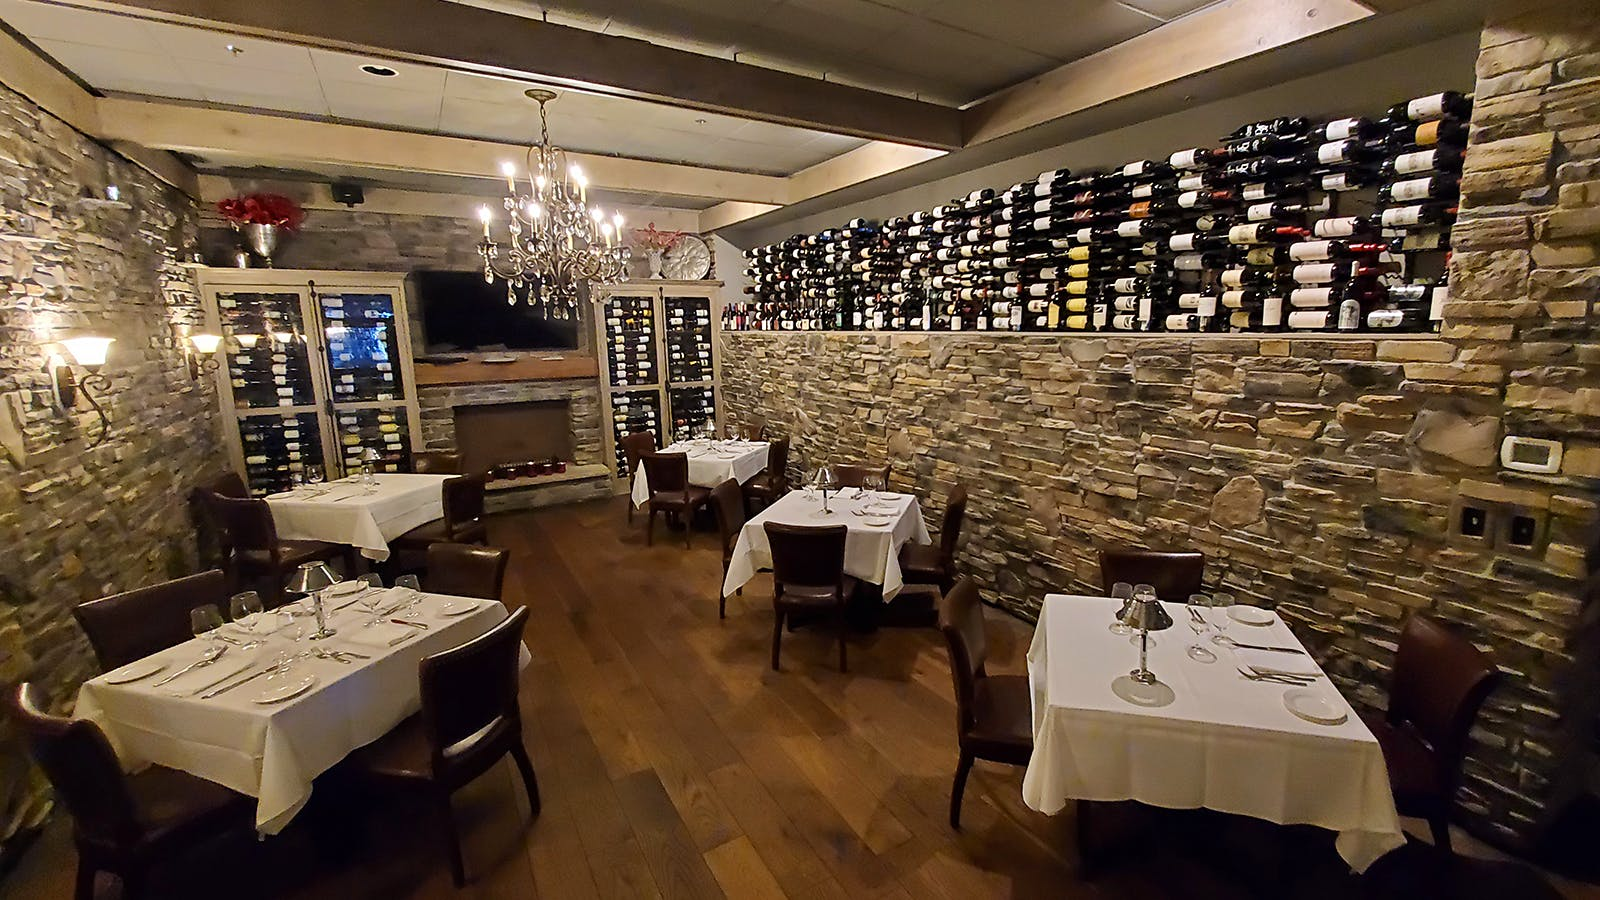 Restaurant Spotlight: Gianni's Steakhouse